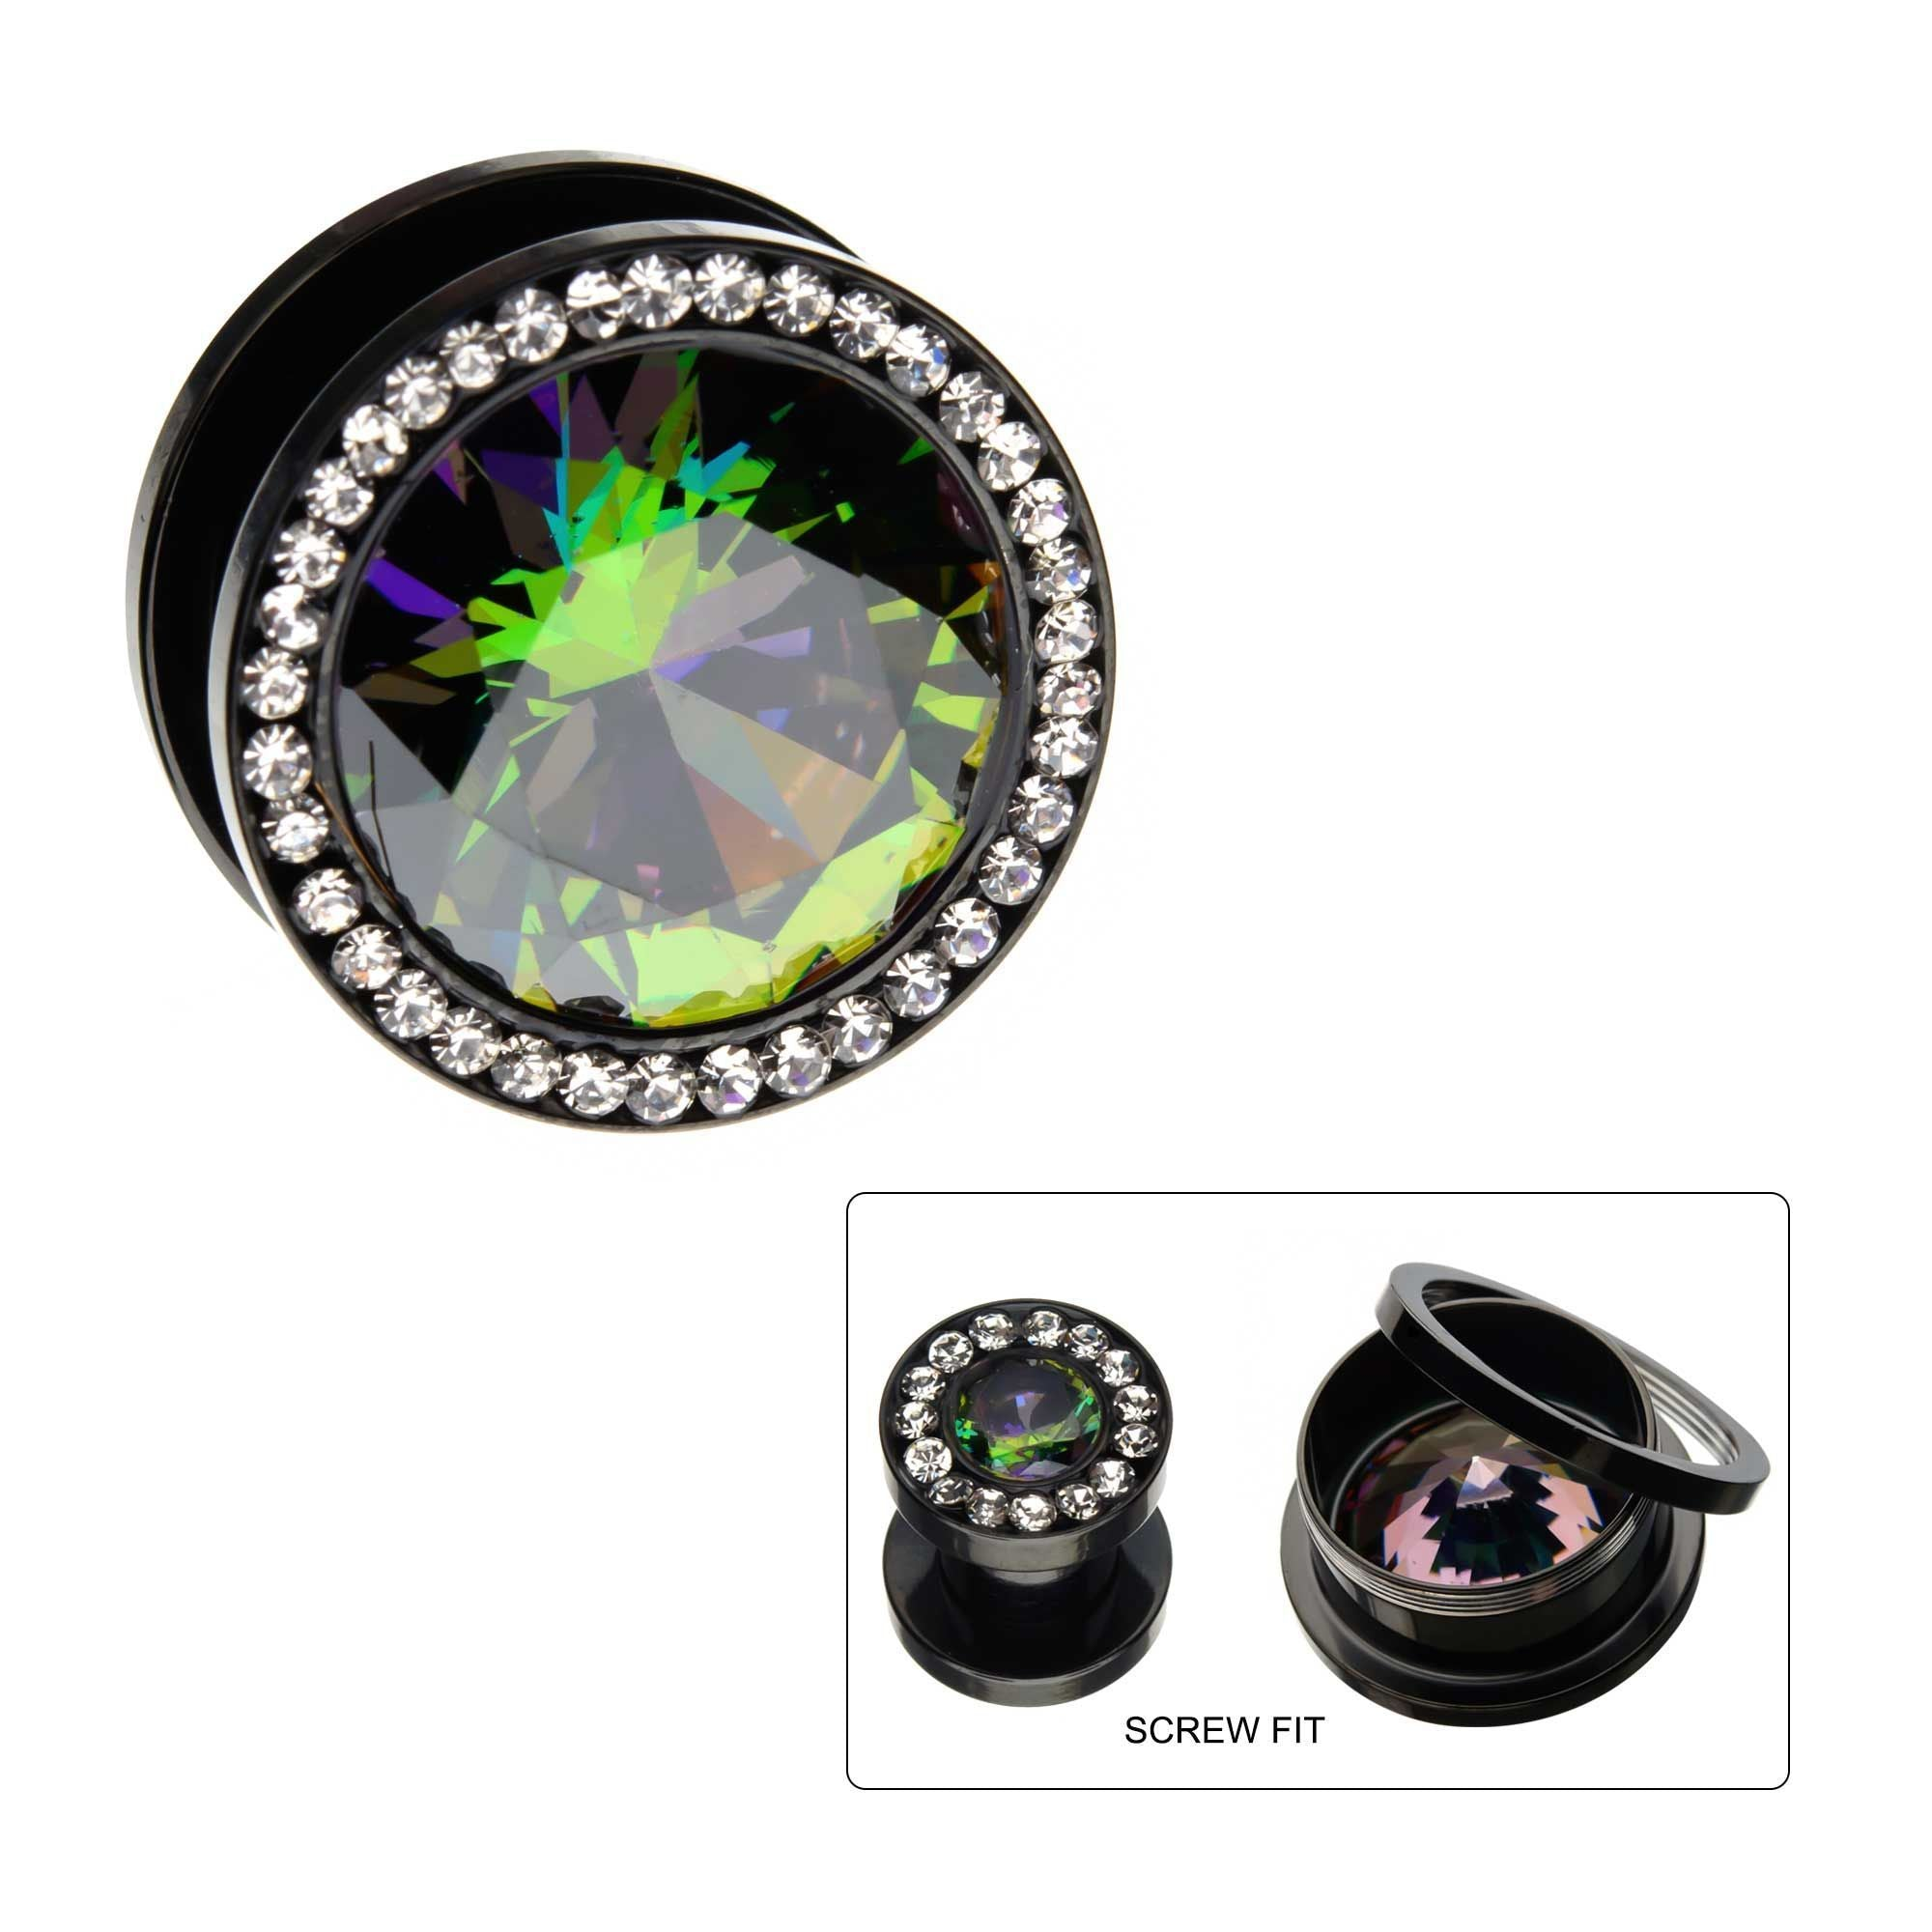 Ear Gauges/Gauge Earrings/Plugs Earrings - Double Flare Black Plated Vitrail Medium and Clear CZ Gem Screw Fit Plugs - 1 Pair  sbvpsgm4kwc -Rebel Bod-RebelBod